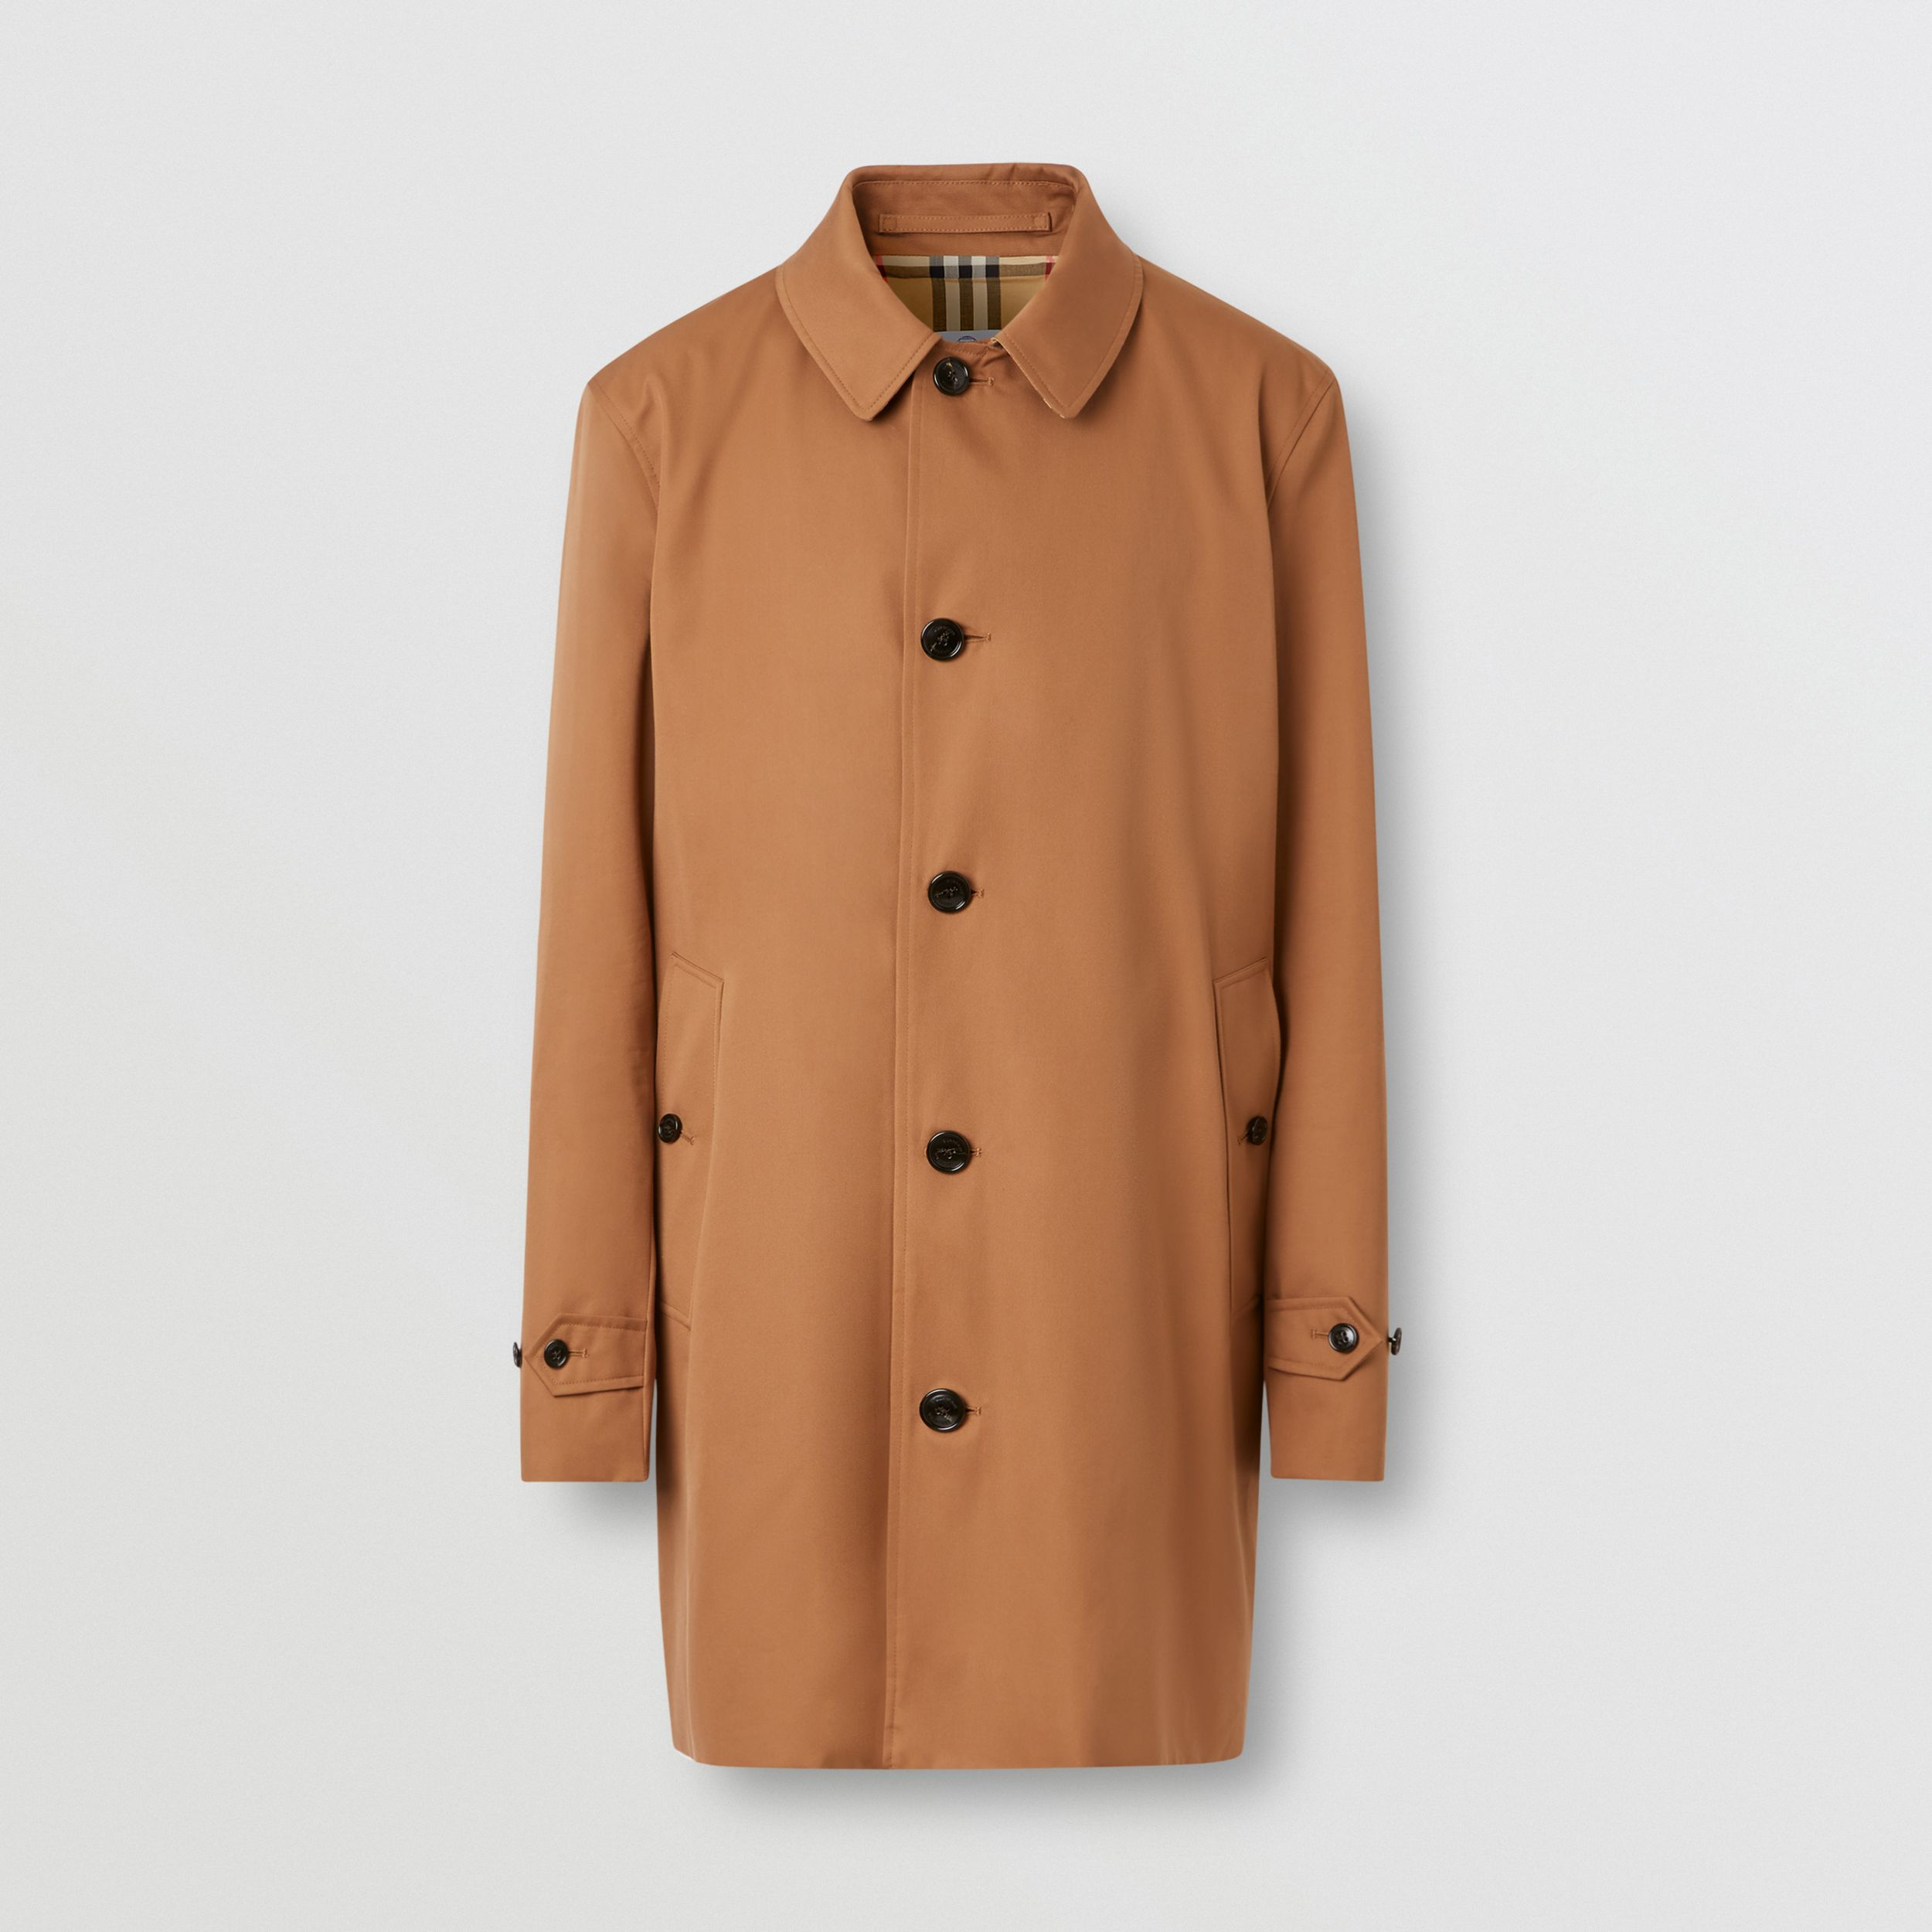 Organic Cotton Gabardine Car Coat in Dusty Caramel - Men | Burberry - 4